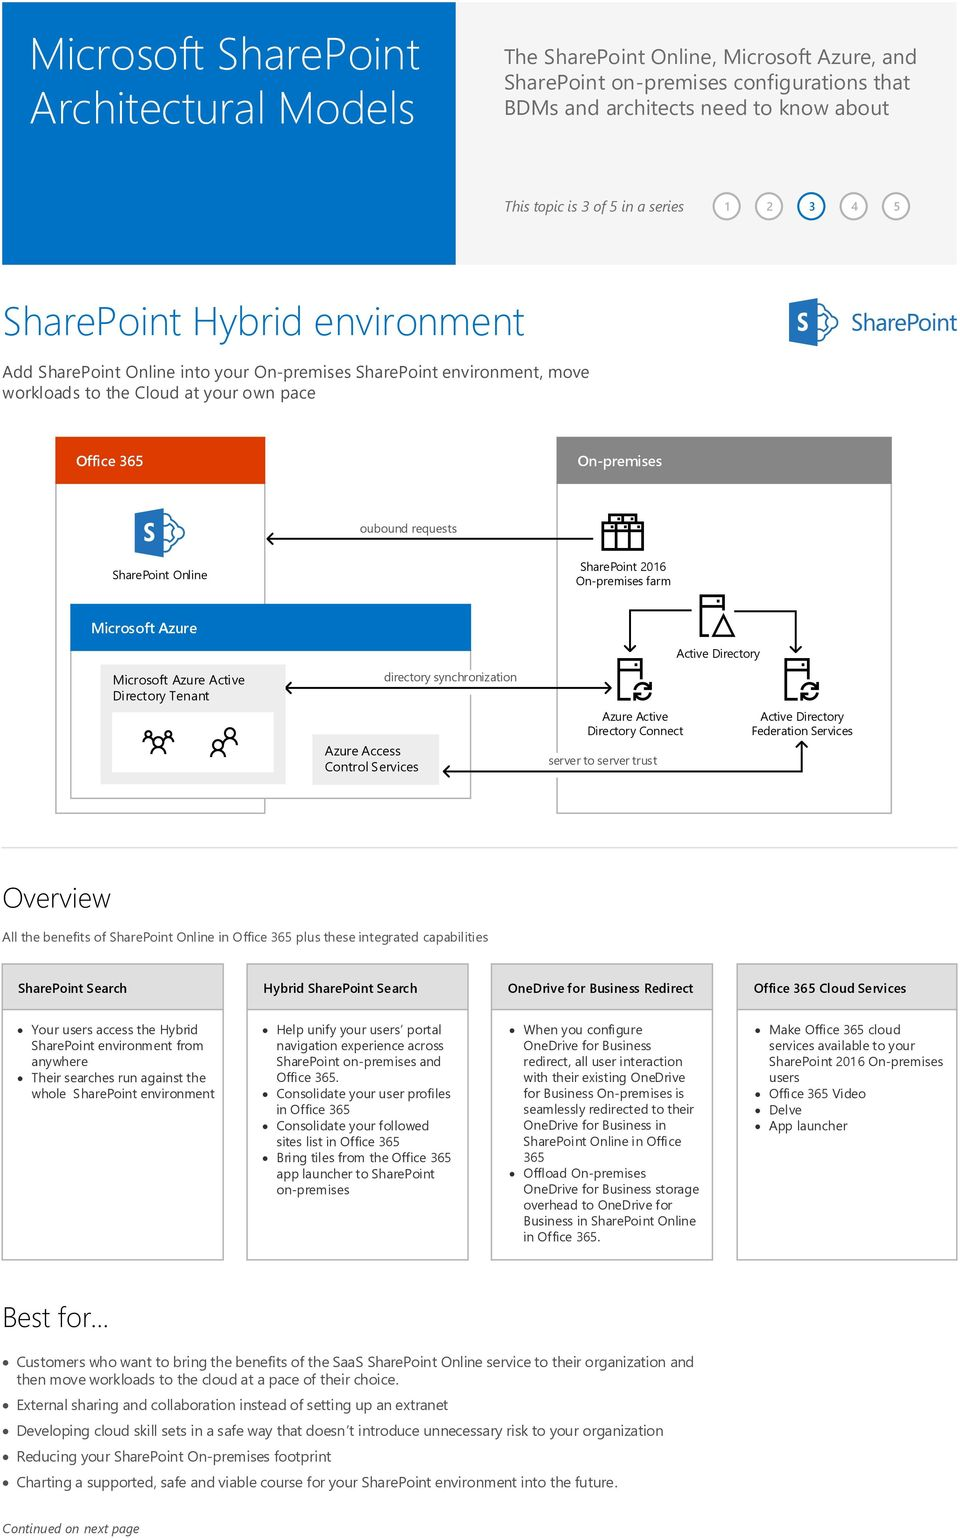 Active Directory Connect to trust Active Directory Federation Services All the benefits of SharePoint Online in Office 365 plus these integrated capabilities SharePoint Search Hybrid SharePoint